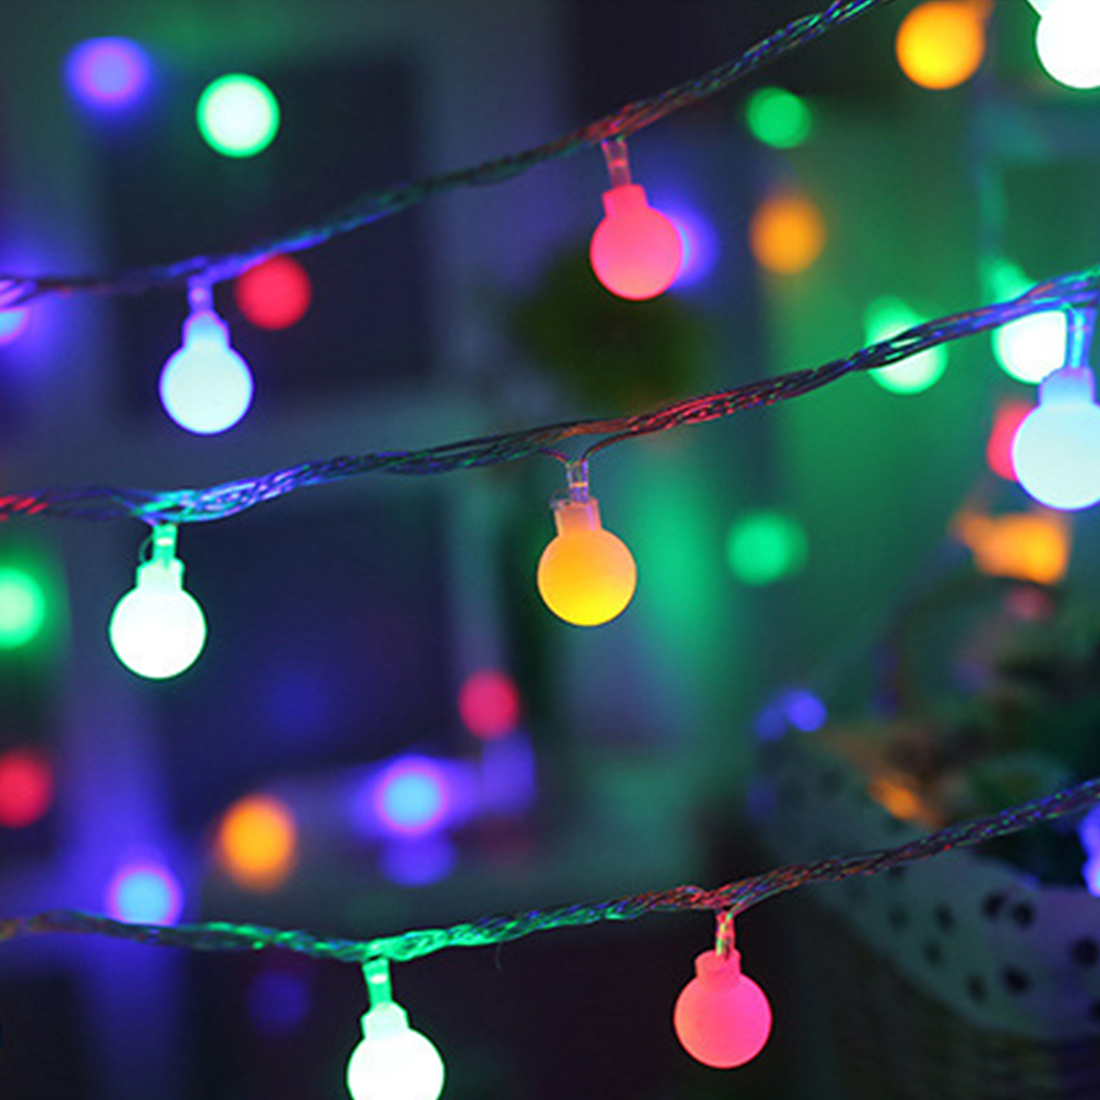 LED Garland Balls Outdoor String Lights Battery 10 Festoon Light Bulbs Flash Warm White Colorful